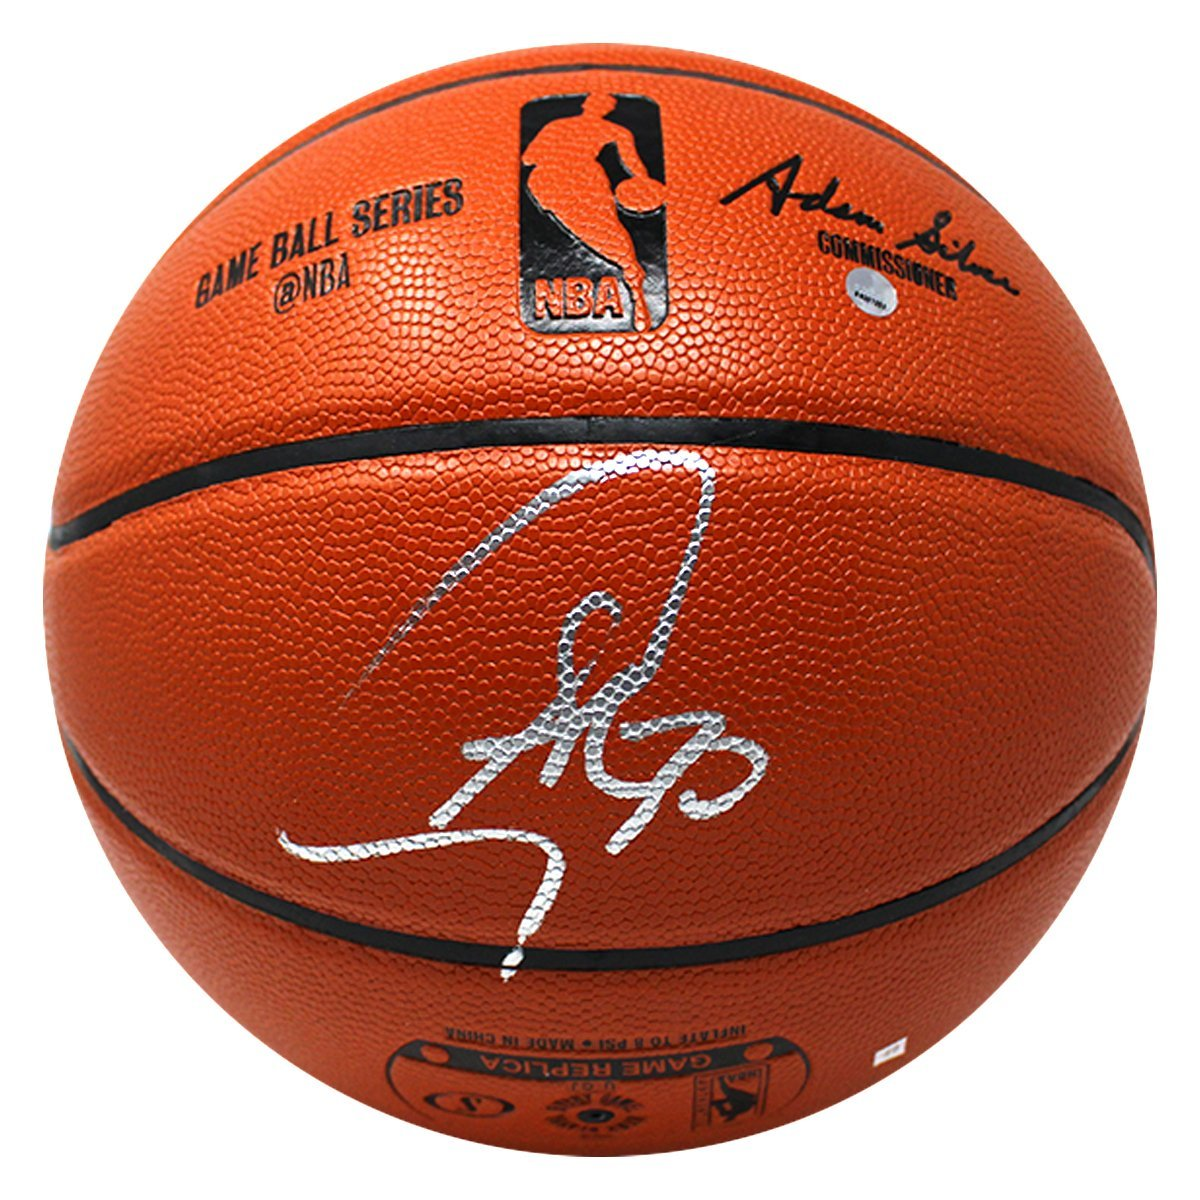 Replica Spalding Inside/Outside Basketball (autographs will vary)